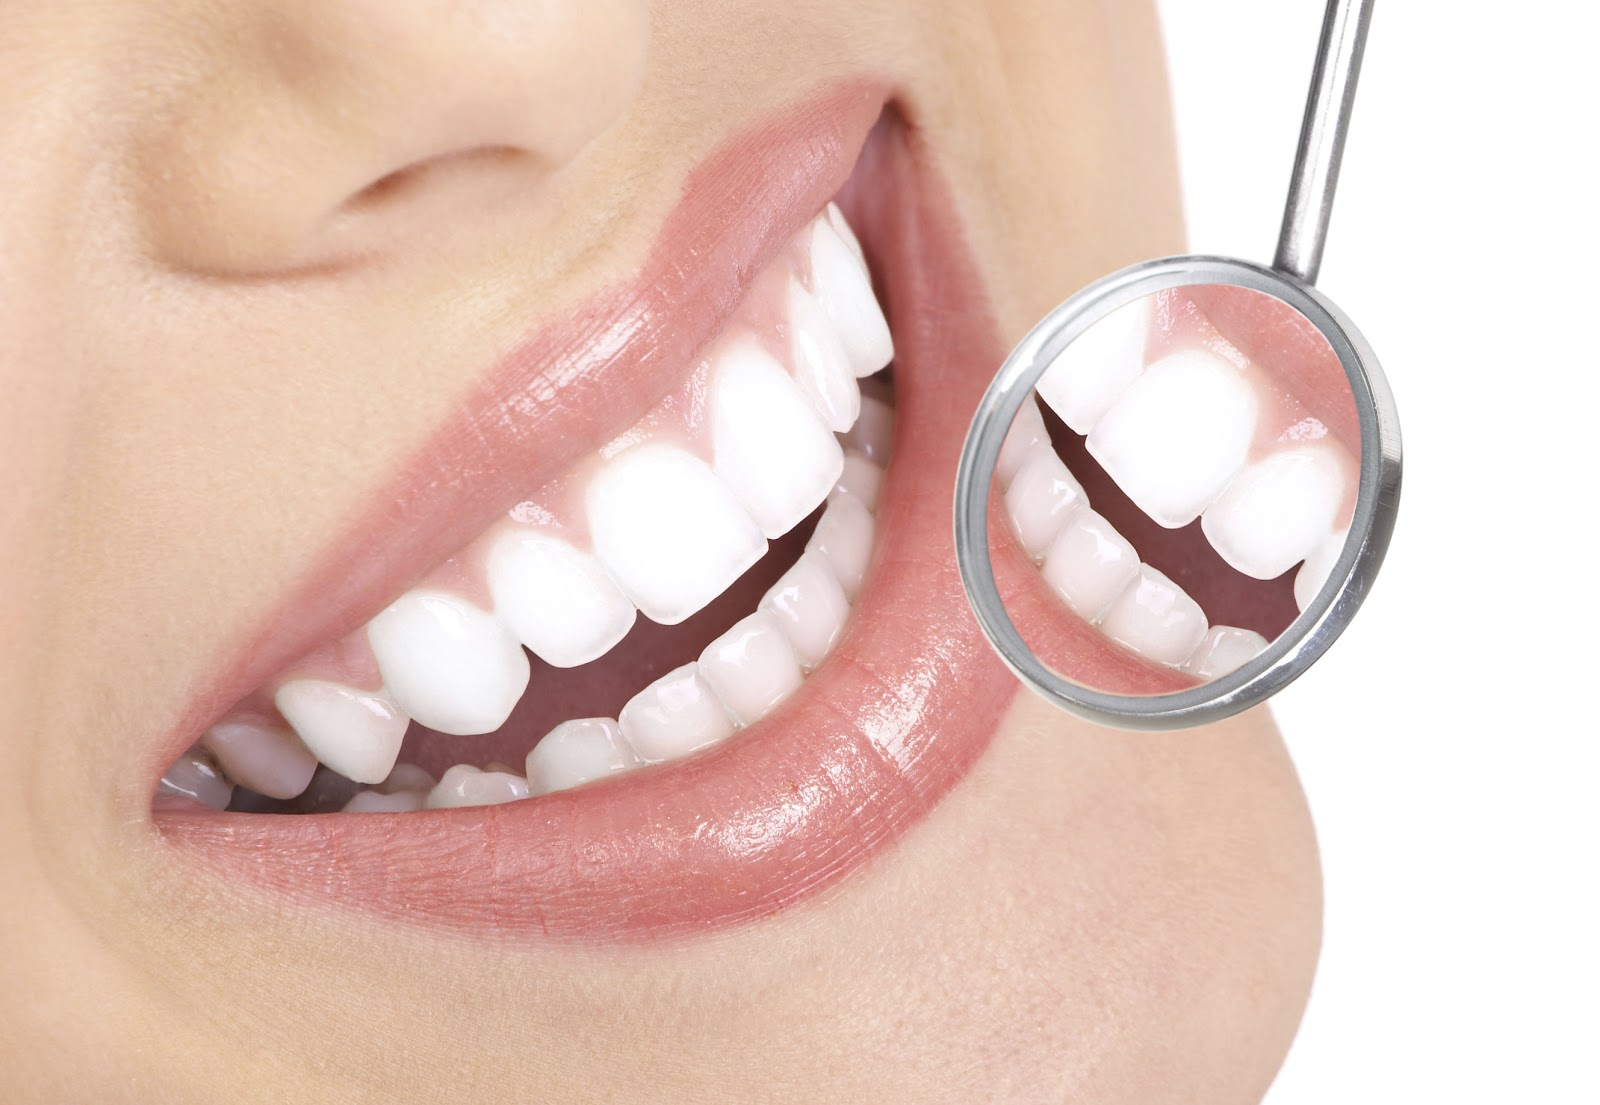 Does missing Teeth become Problematic to your Life? – A Quick Solution!